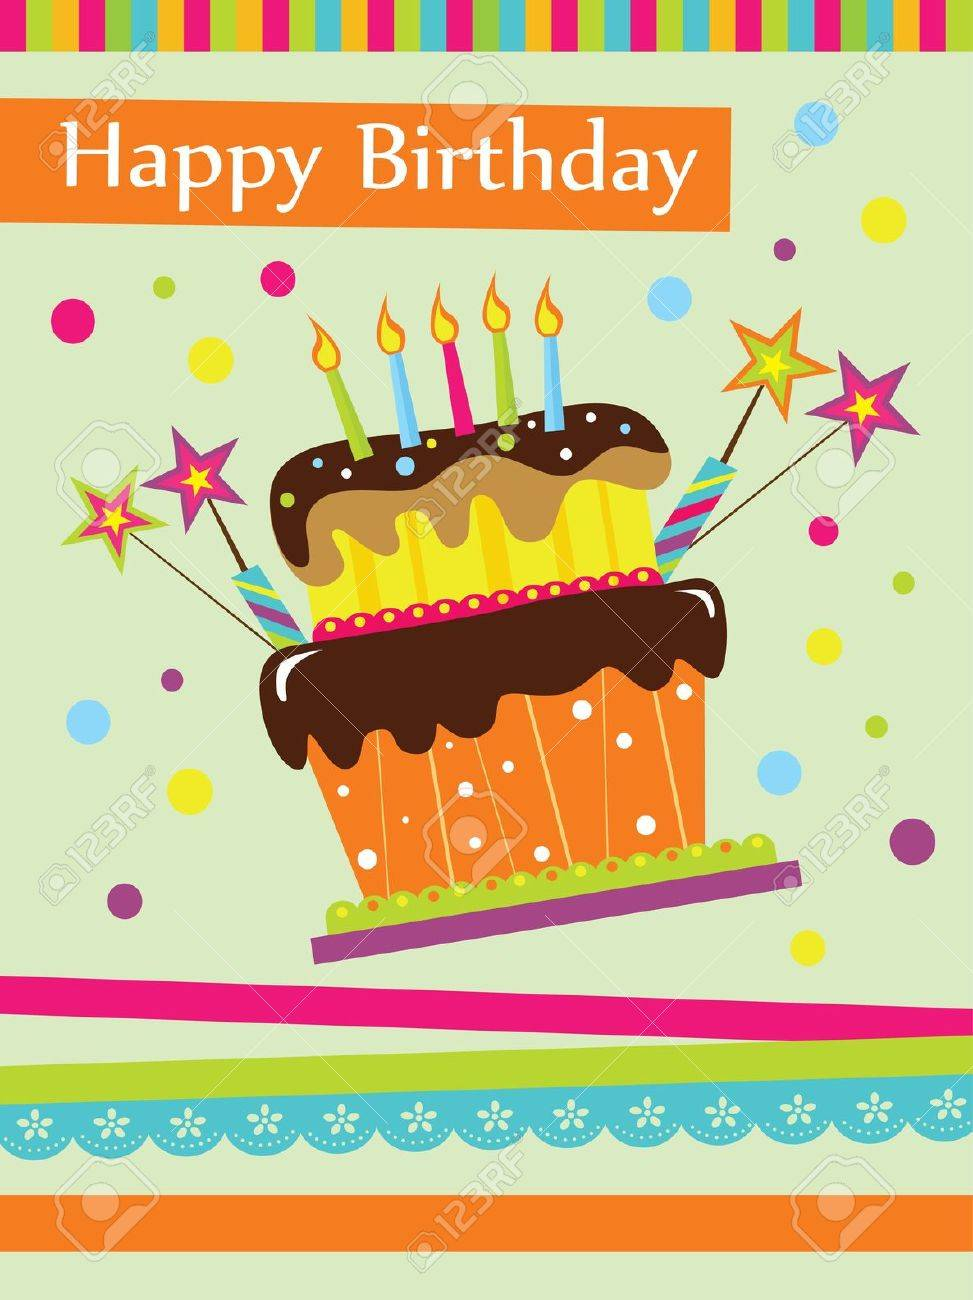 Happy Birthday Cake Card Design Vector Illustration Royalty Free – Happy Birthday Cake Greetings